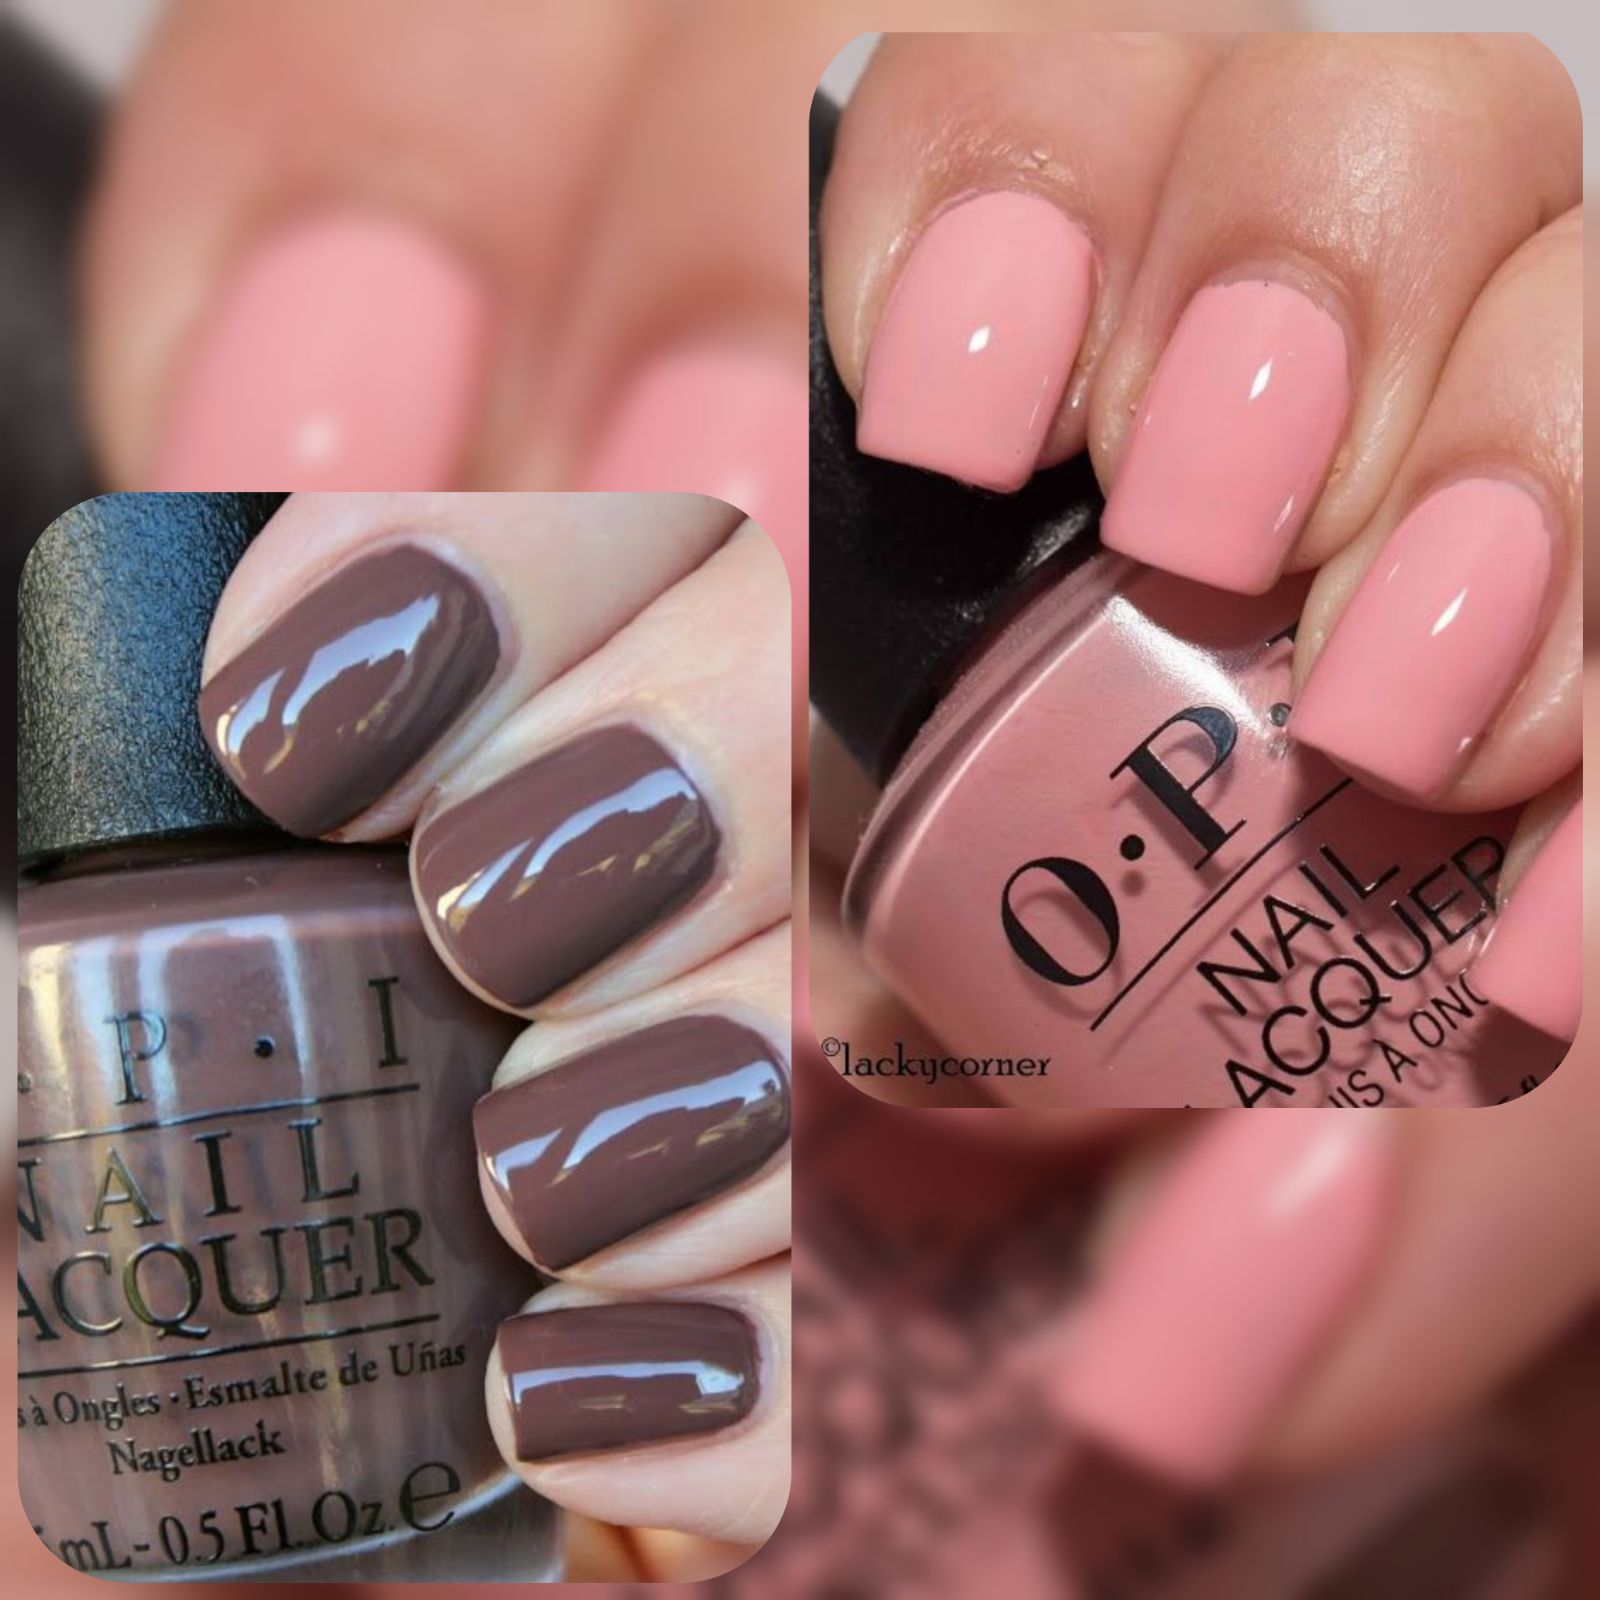 OPI nail polish set.